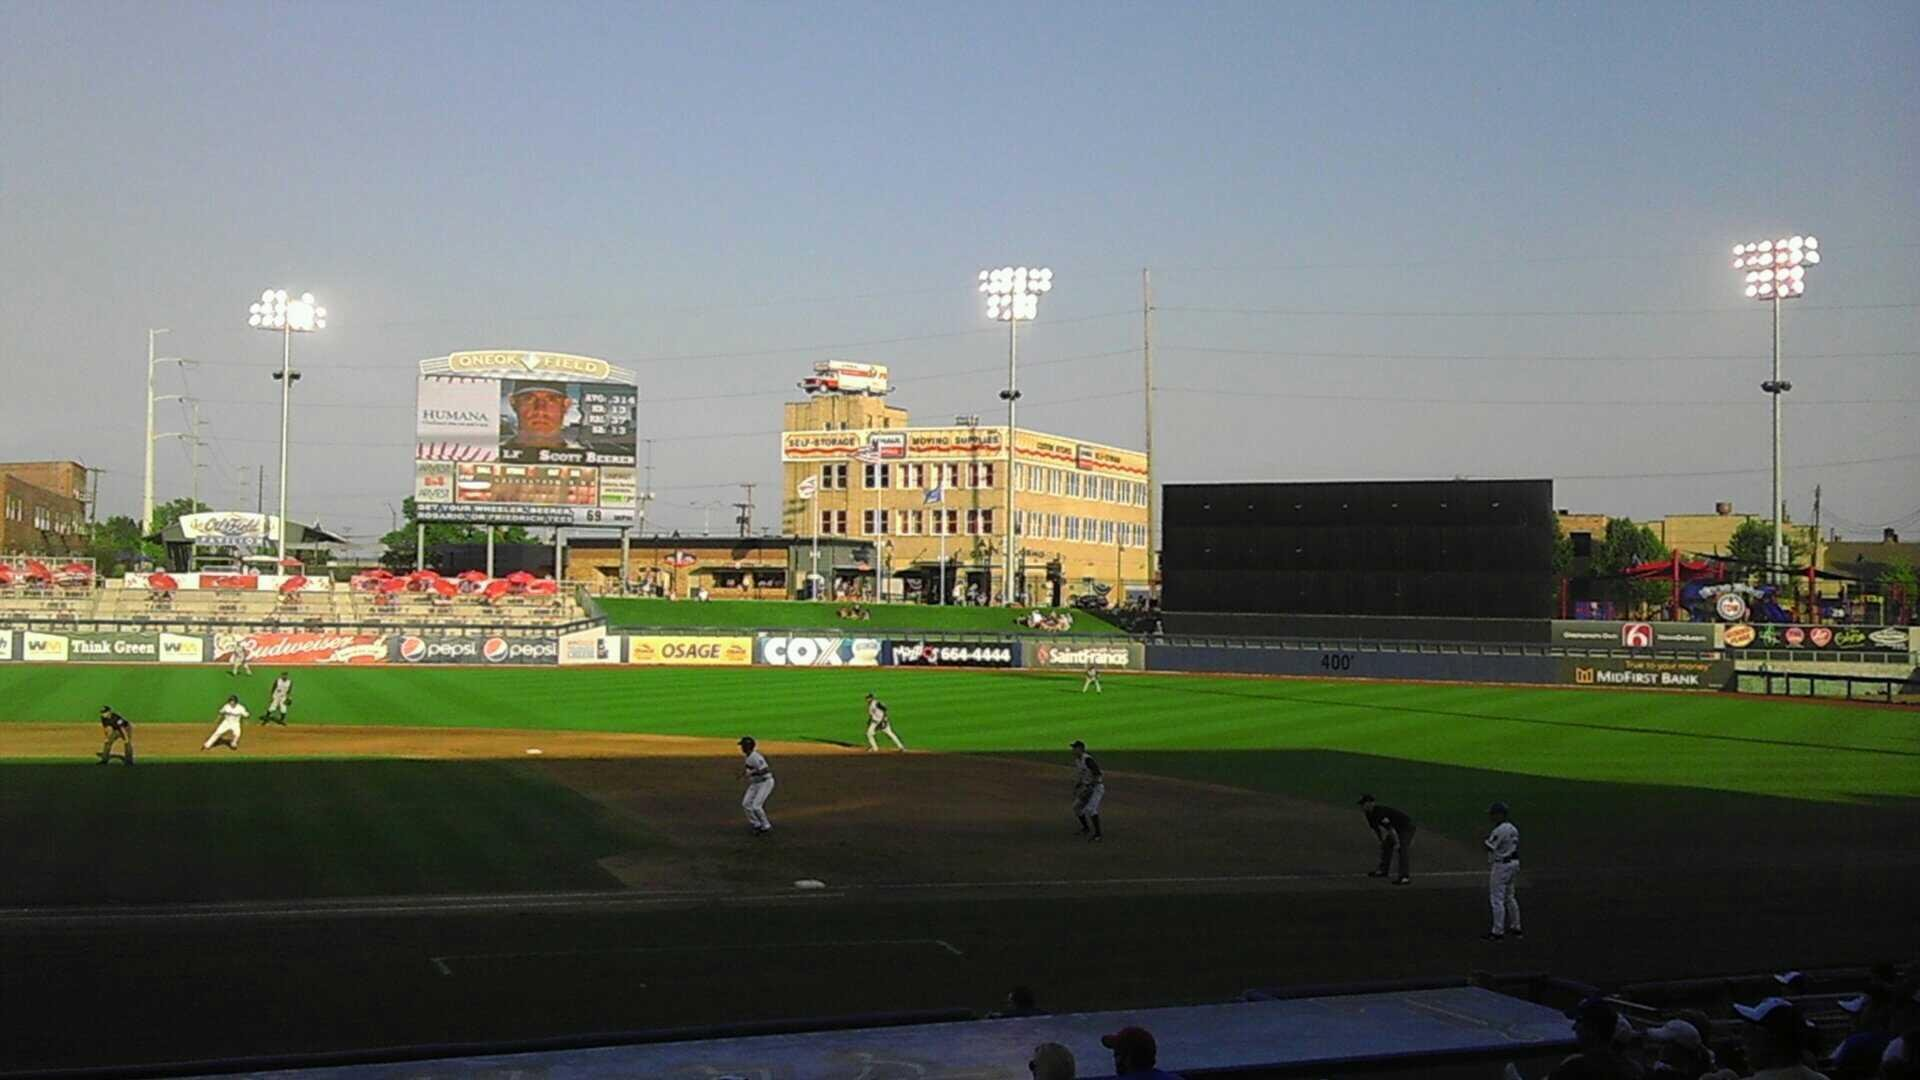 ONEOK Field Section 101 Row M Seat 16